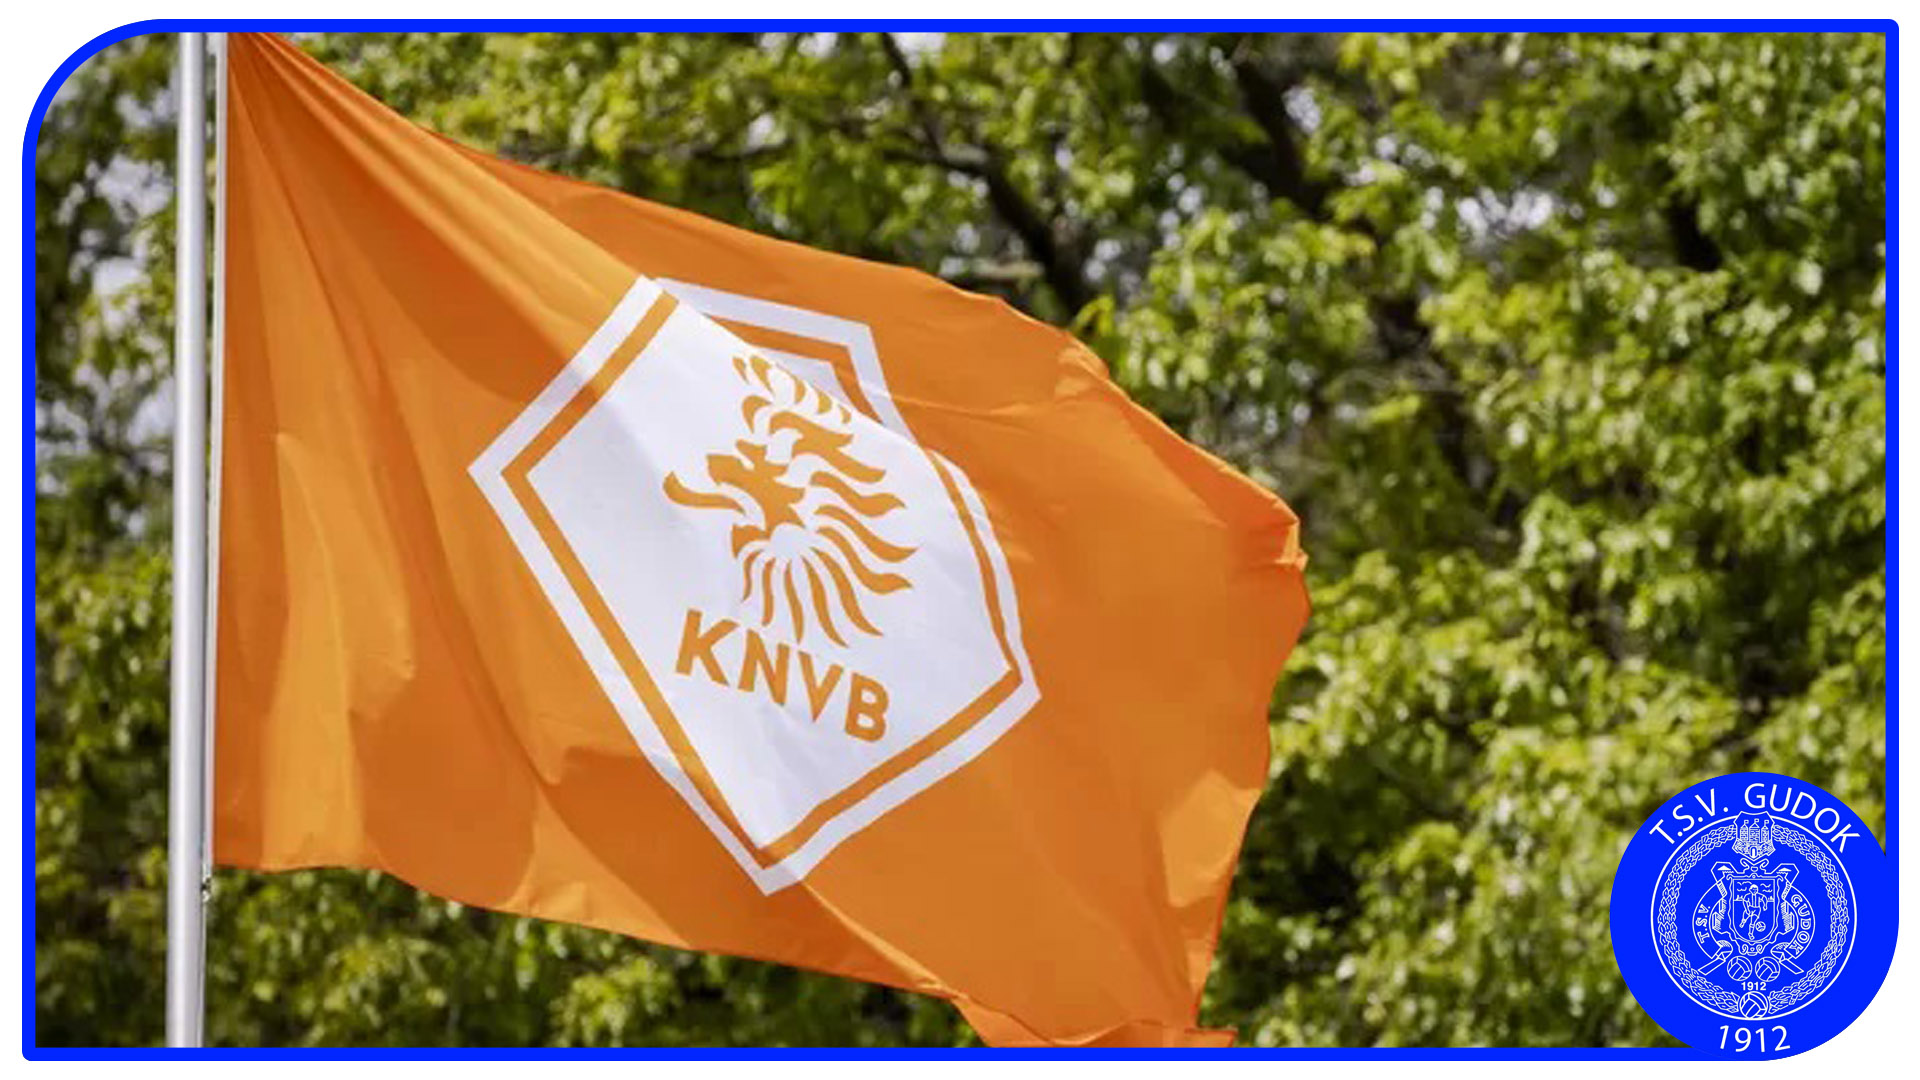 KNVB schrapt competities in amateurvoetbal